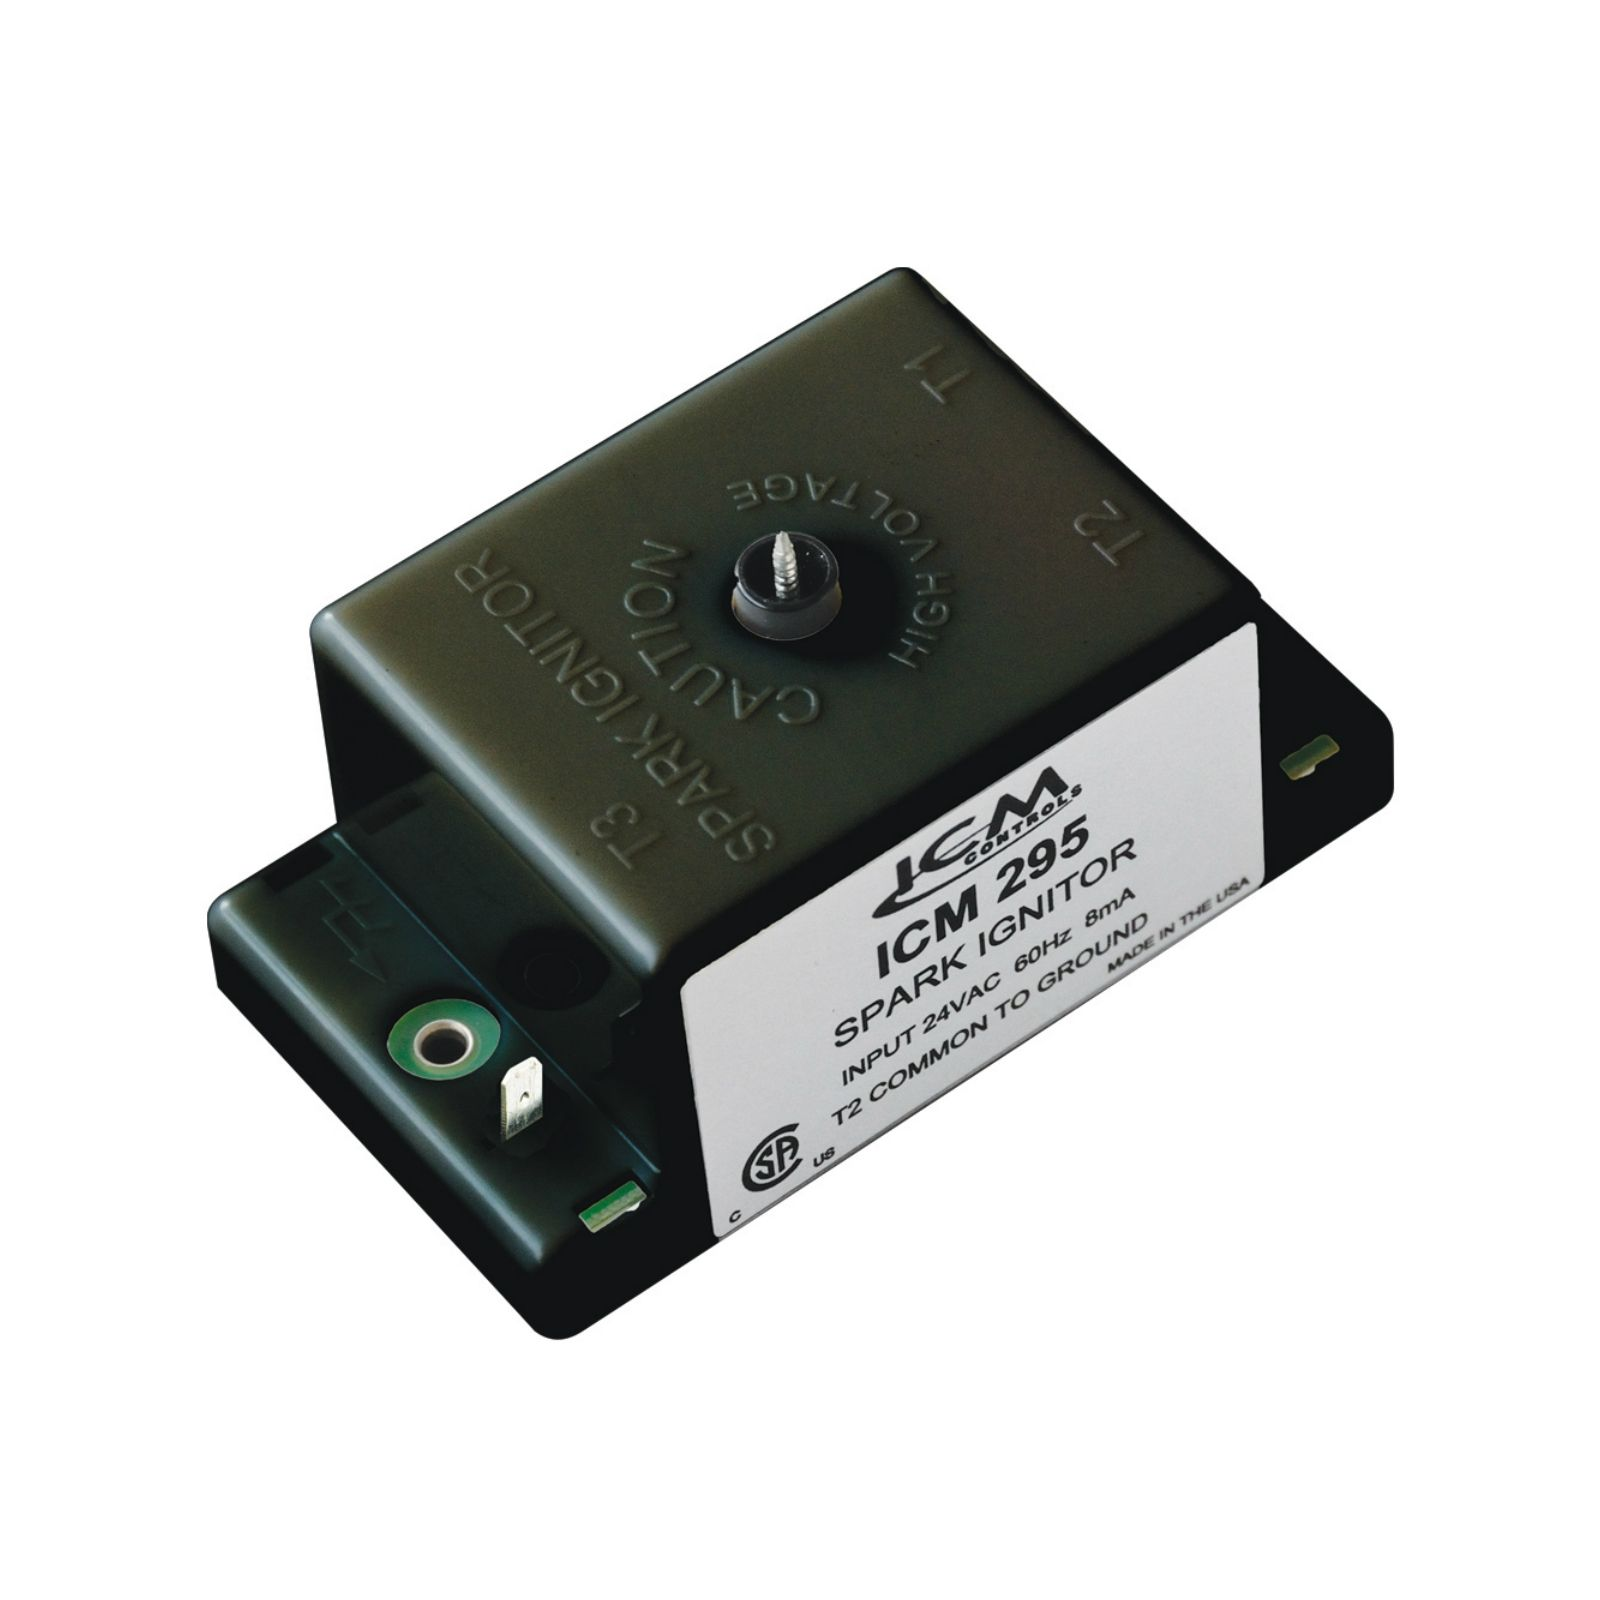 ICM ICM295 - Spark Ignition Control Module (OEM Replacement, Carrier LH33WZ510)